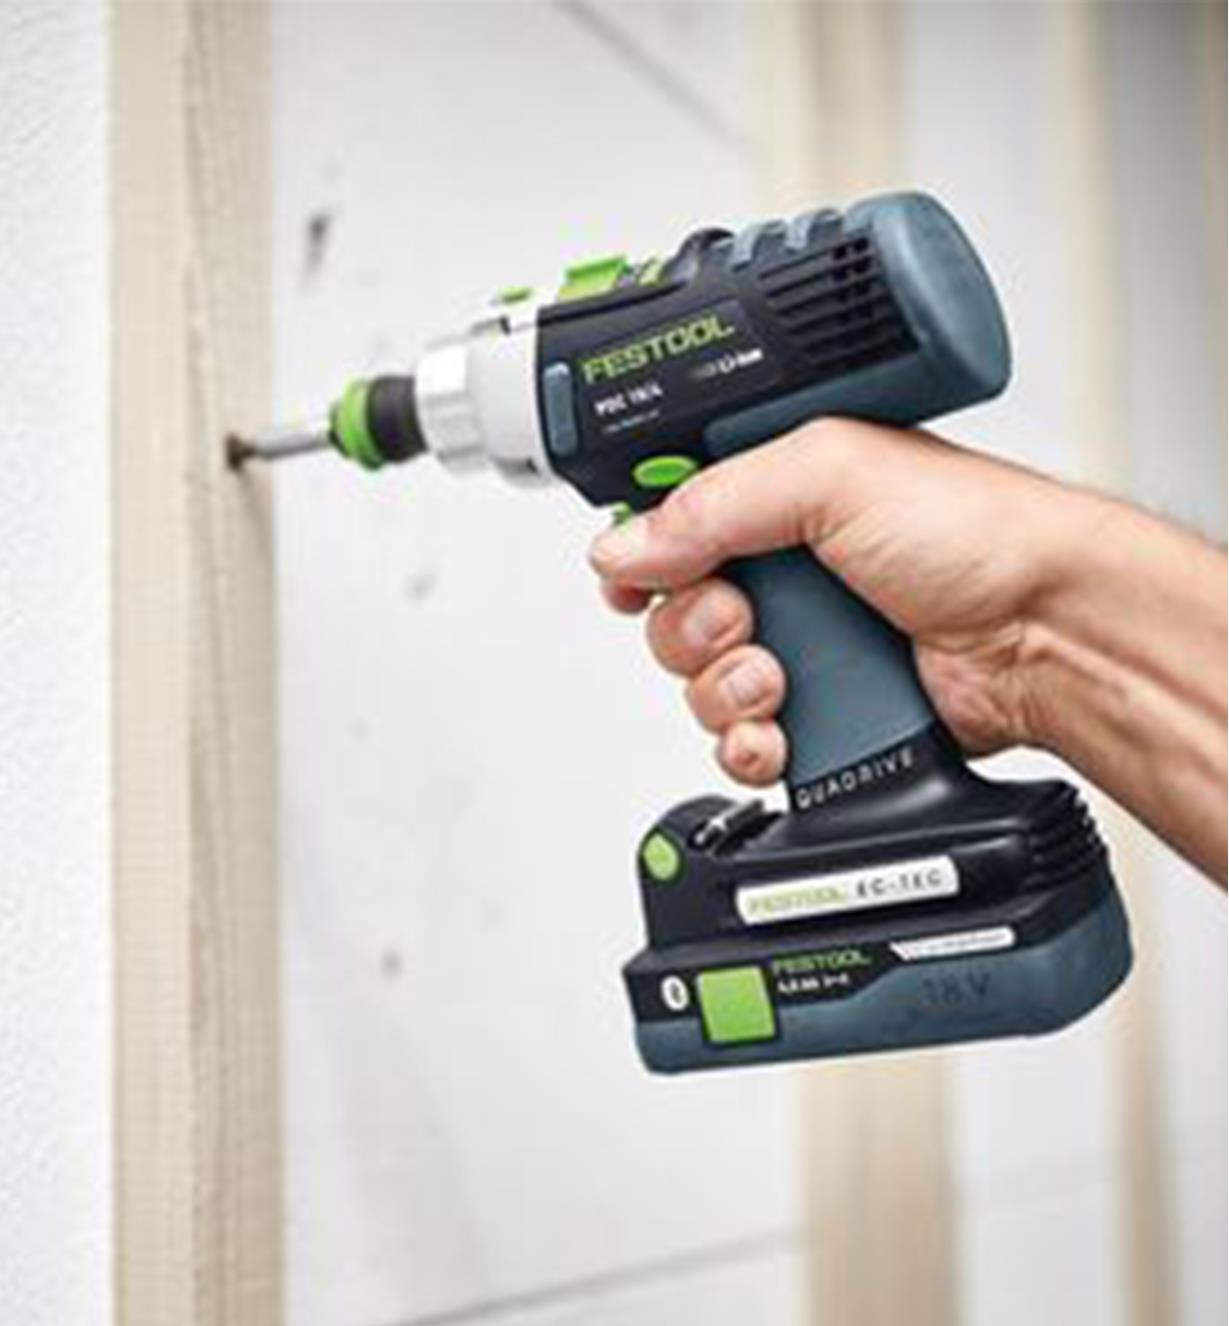 Using the Festool PDC 18 Cordless Hammer Drill to install wall studs